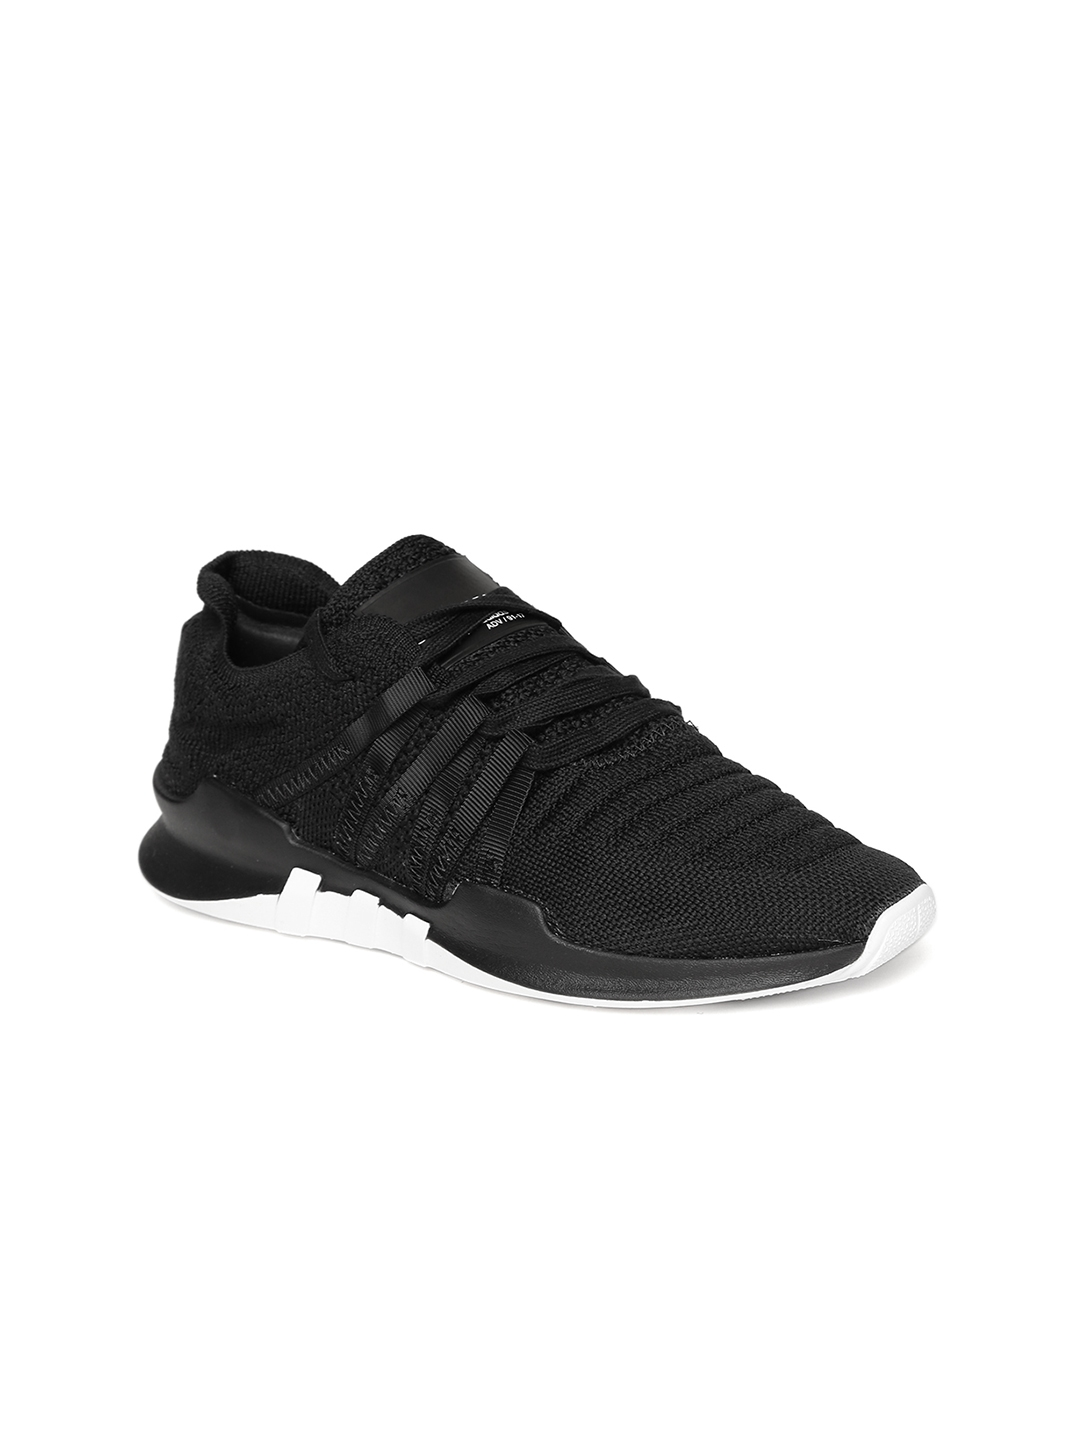 8053902af4c7 Adidas Originals Women Black EQT Racing ADV PK Woven-Design Sneakers